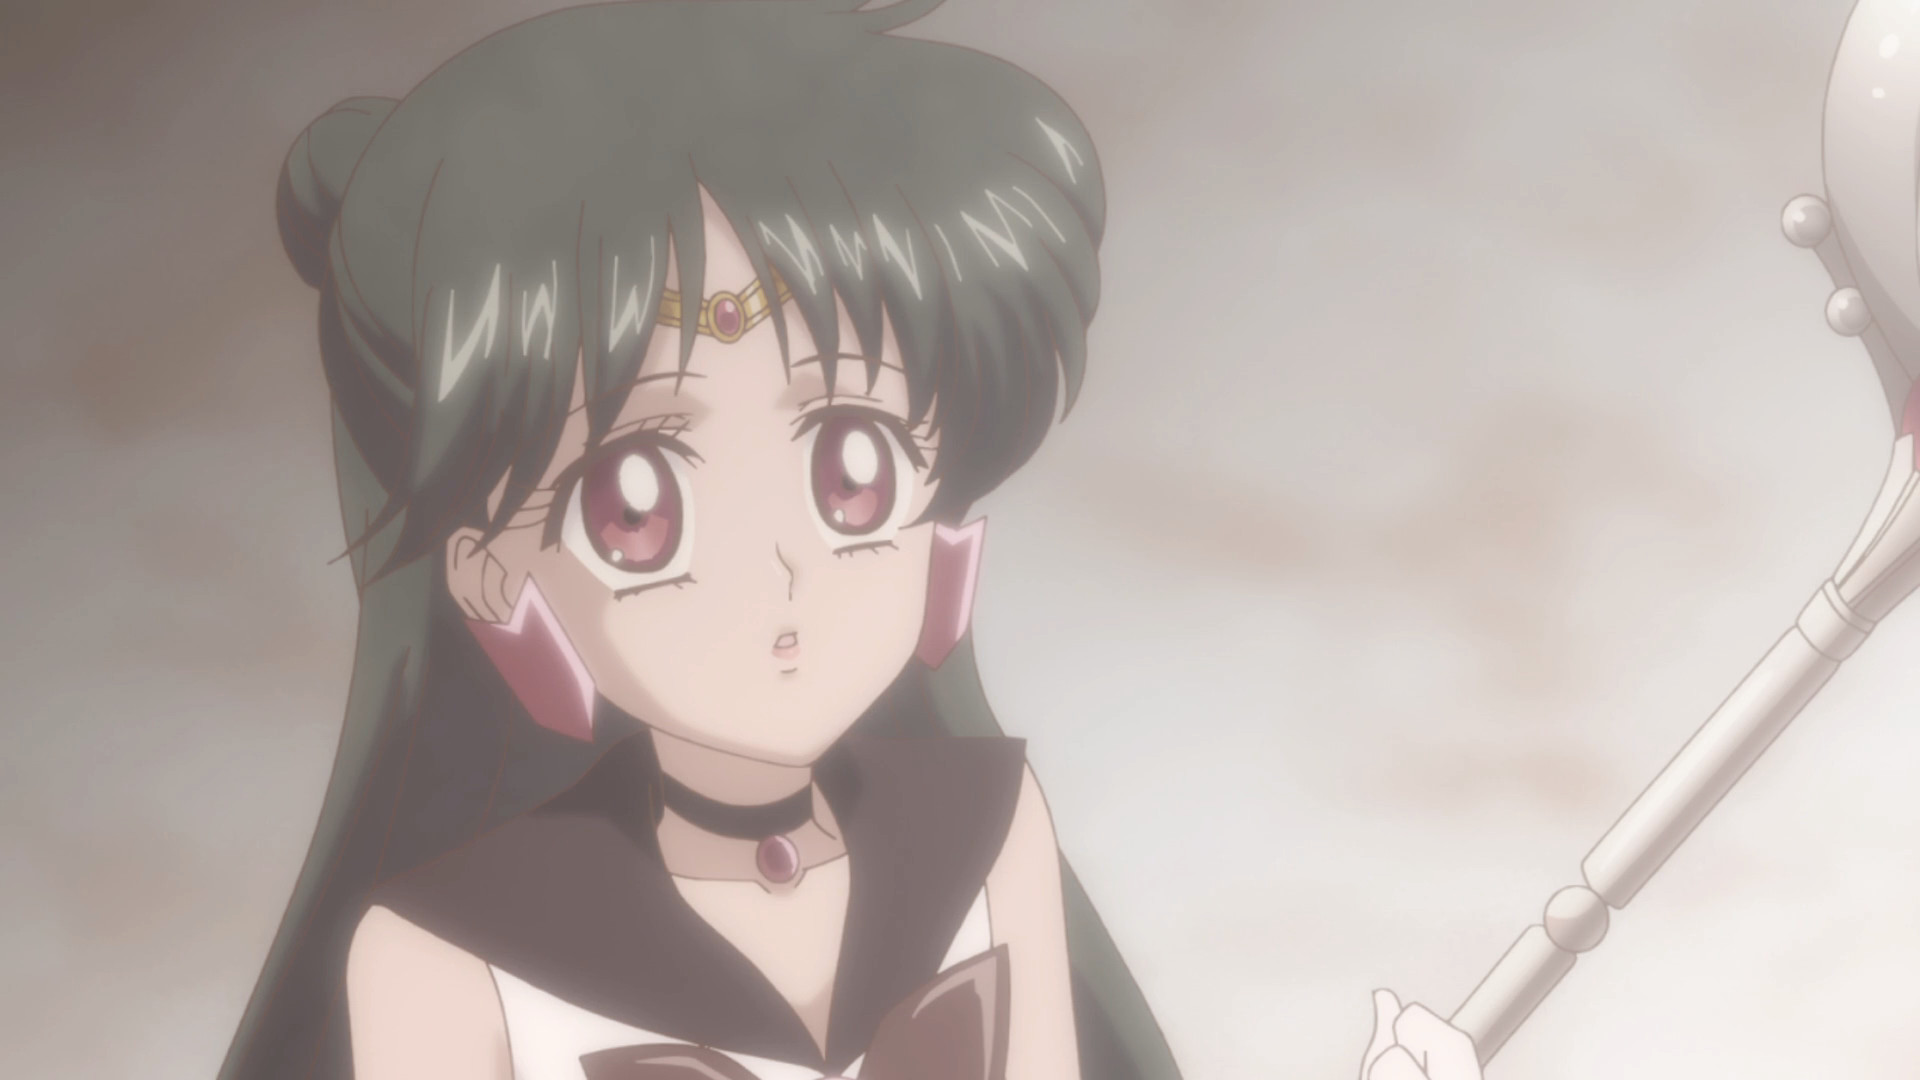 http://sailormoonnews.com/wp-content/uploads/2015/06/sailor_moon_crystal_act_24_young_sailor_pluto.jpg